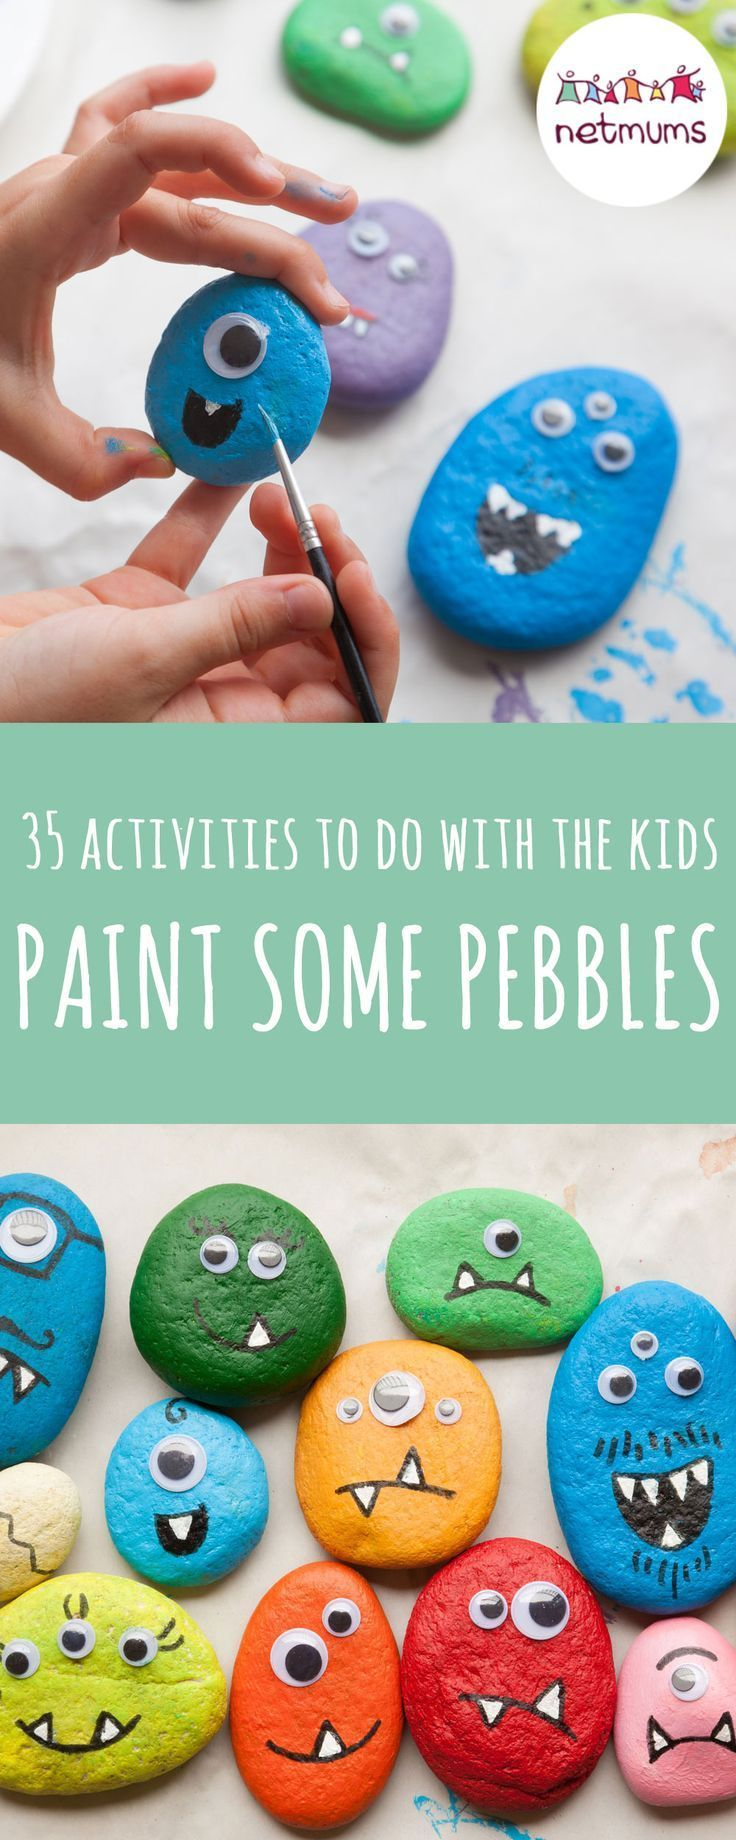 100 genius indoor activities to amuse kids on rainy days